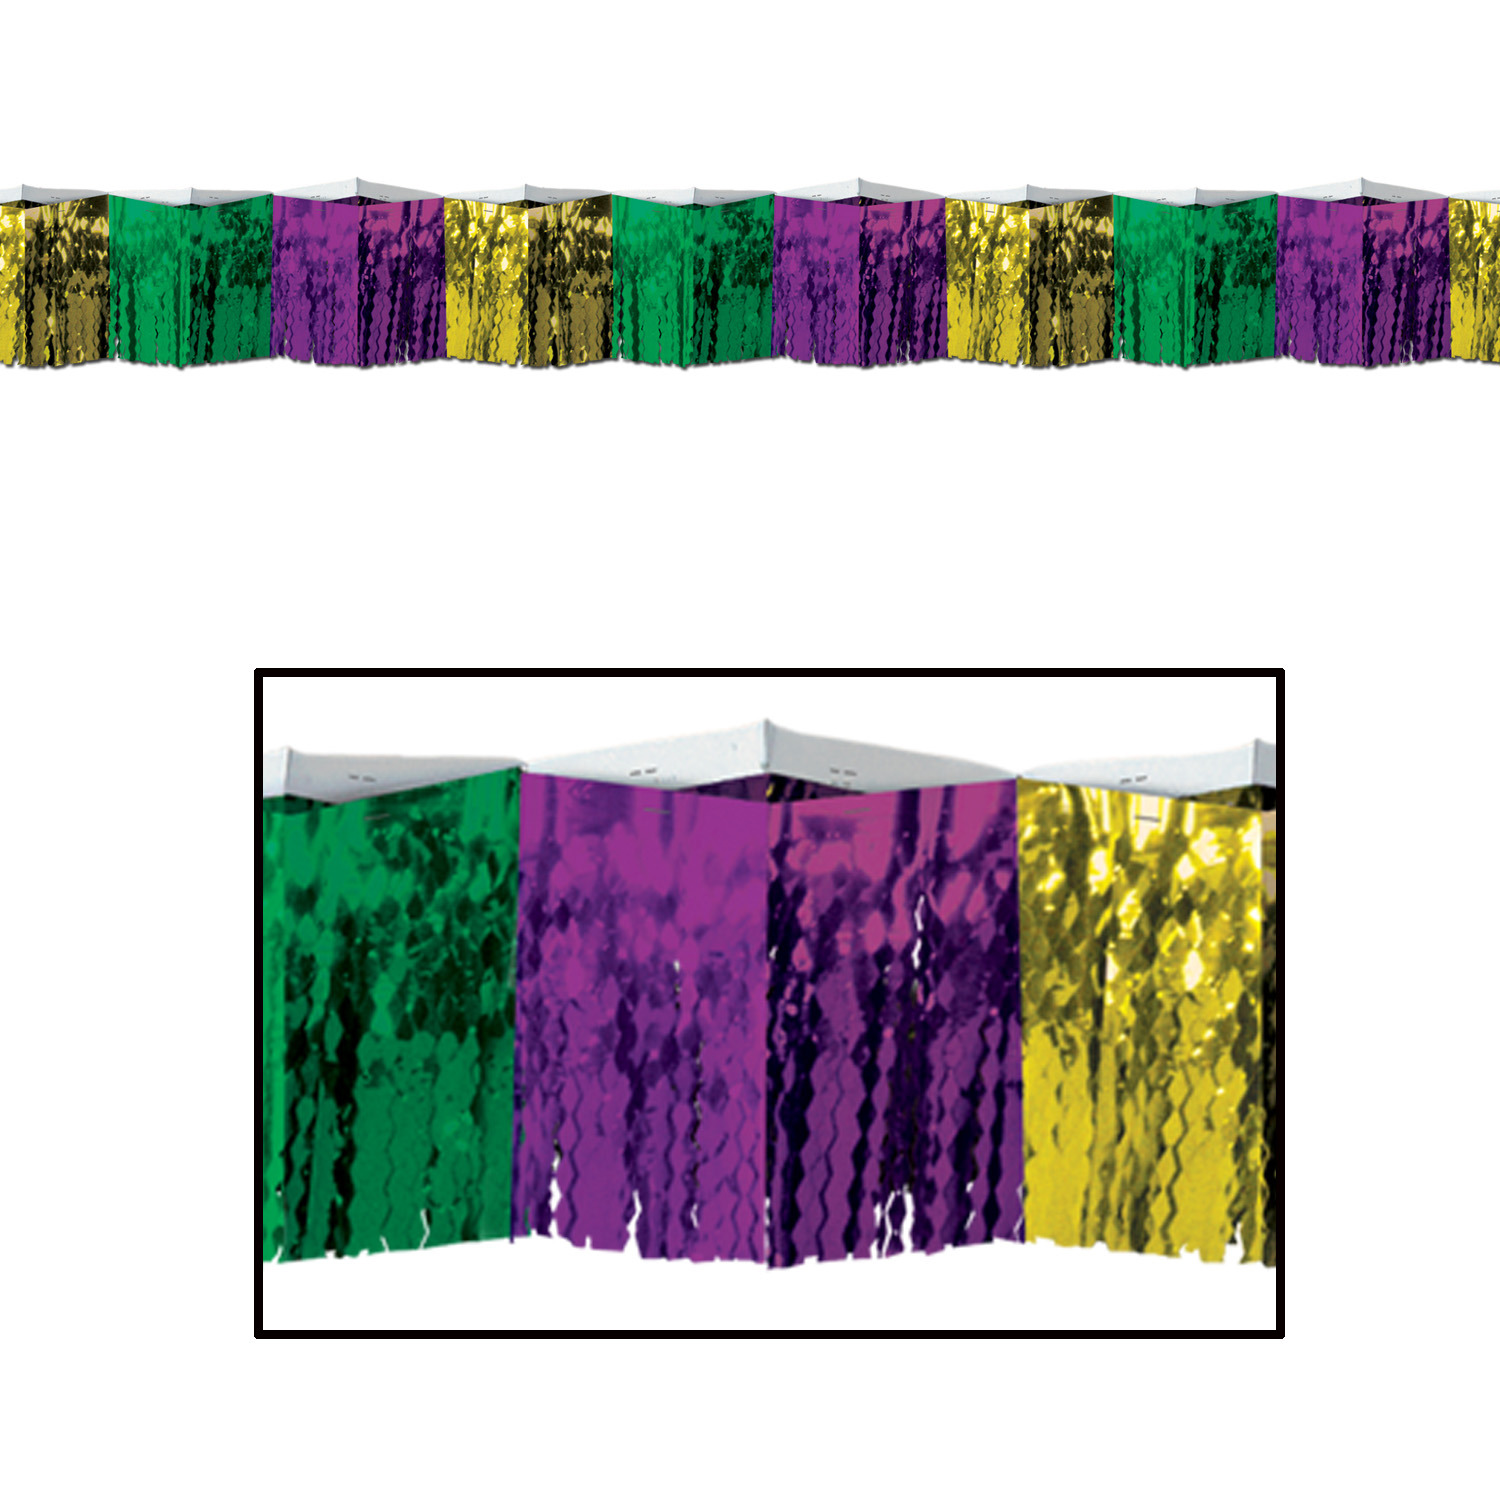 2-Ply Diamond Metallic Fringe Drape (Pack of 6) Diamond Metallic Fringe Drape, mardi gras, decoration, green, gold, green, wholesale, inexpensive, bulk